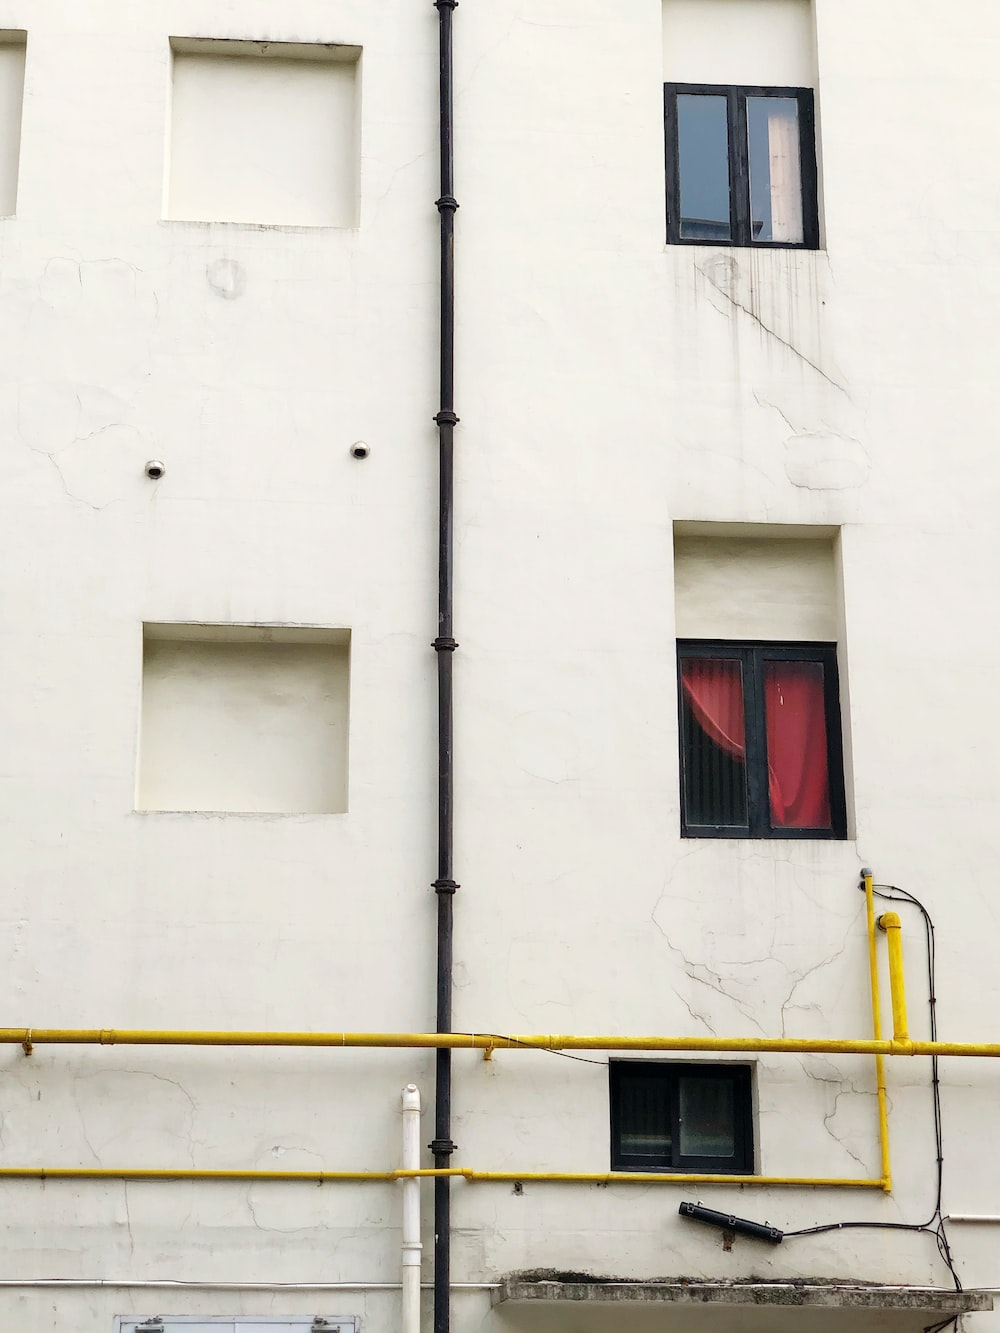 white concrete building with red window